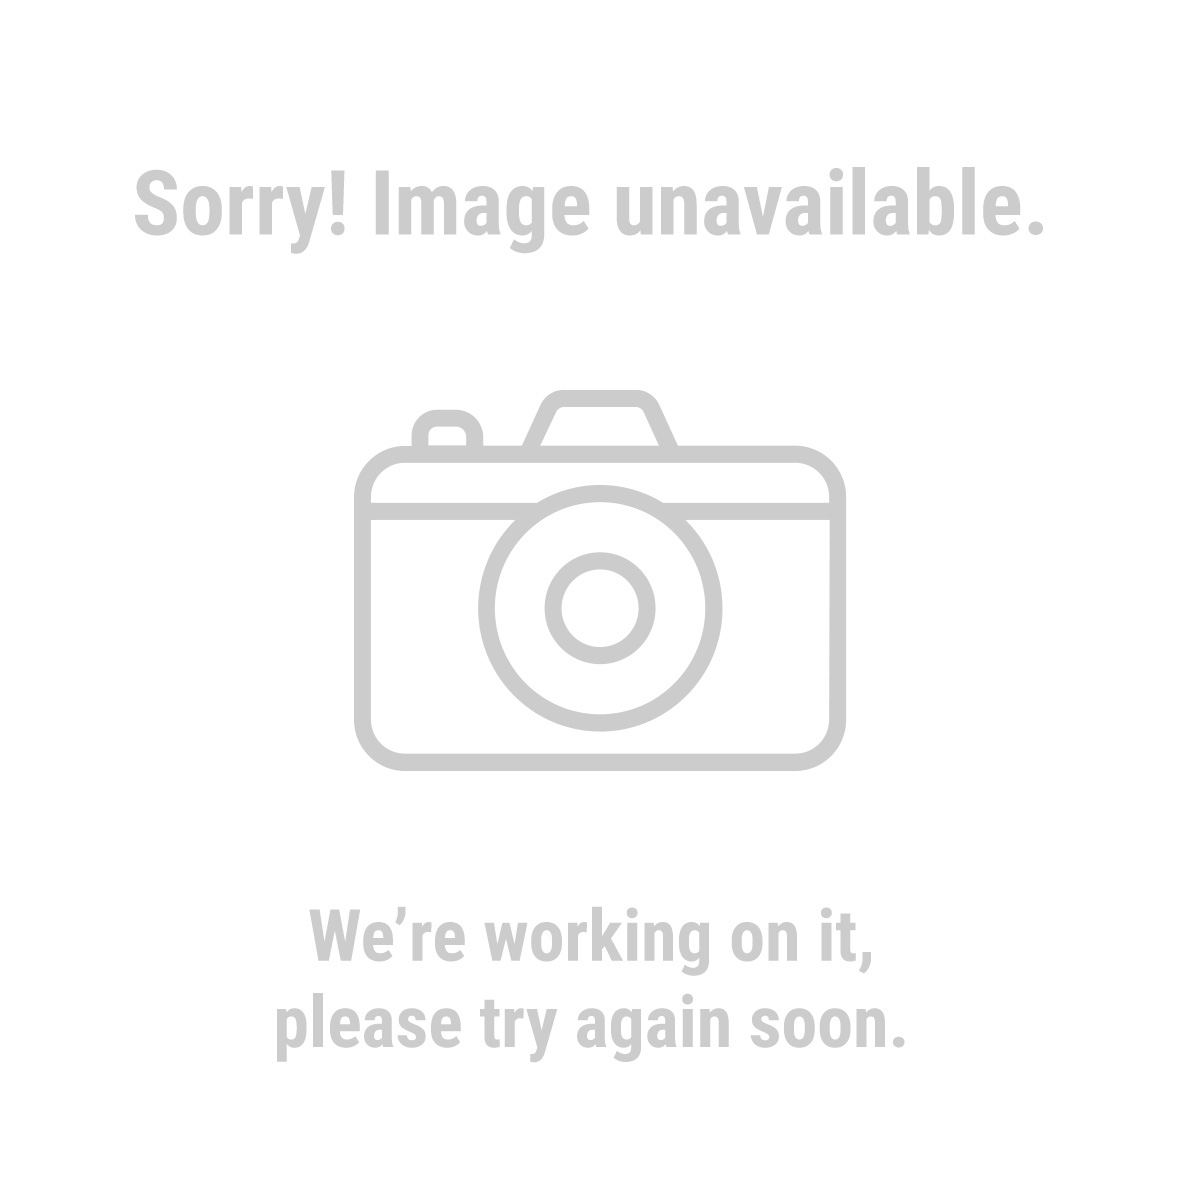 Western Safety 50026 Pack of 50 Dust and Particle Masks